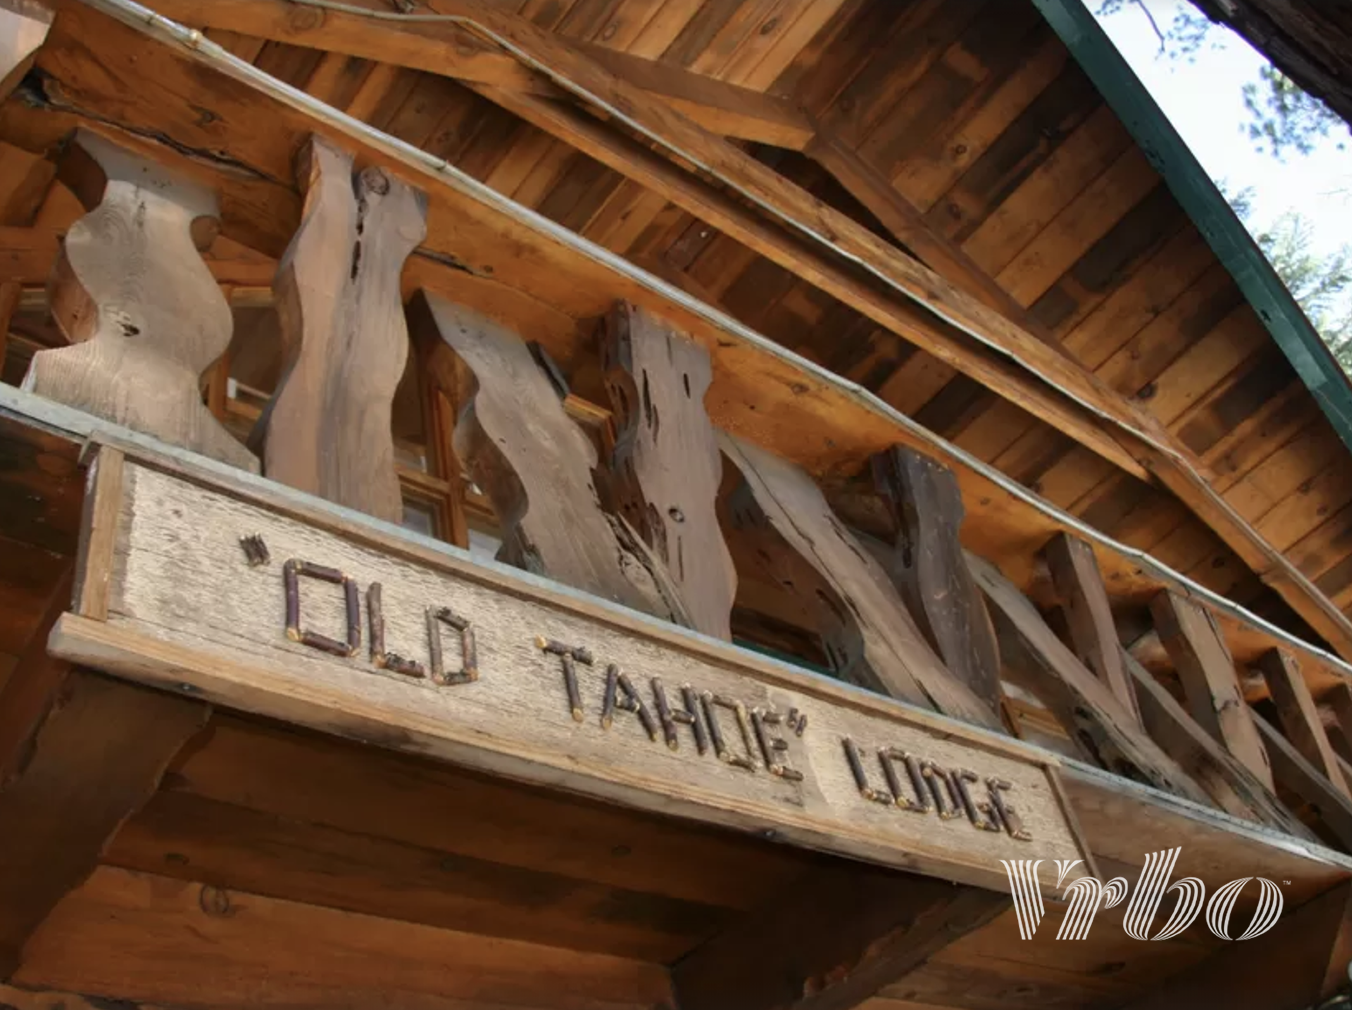 old-tahoe-lodge-sign